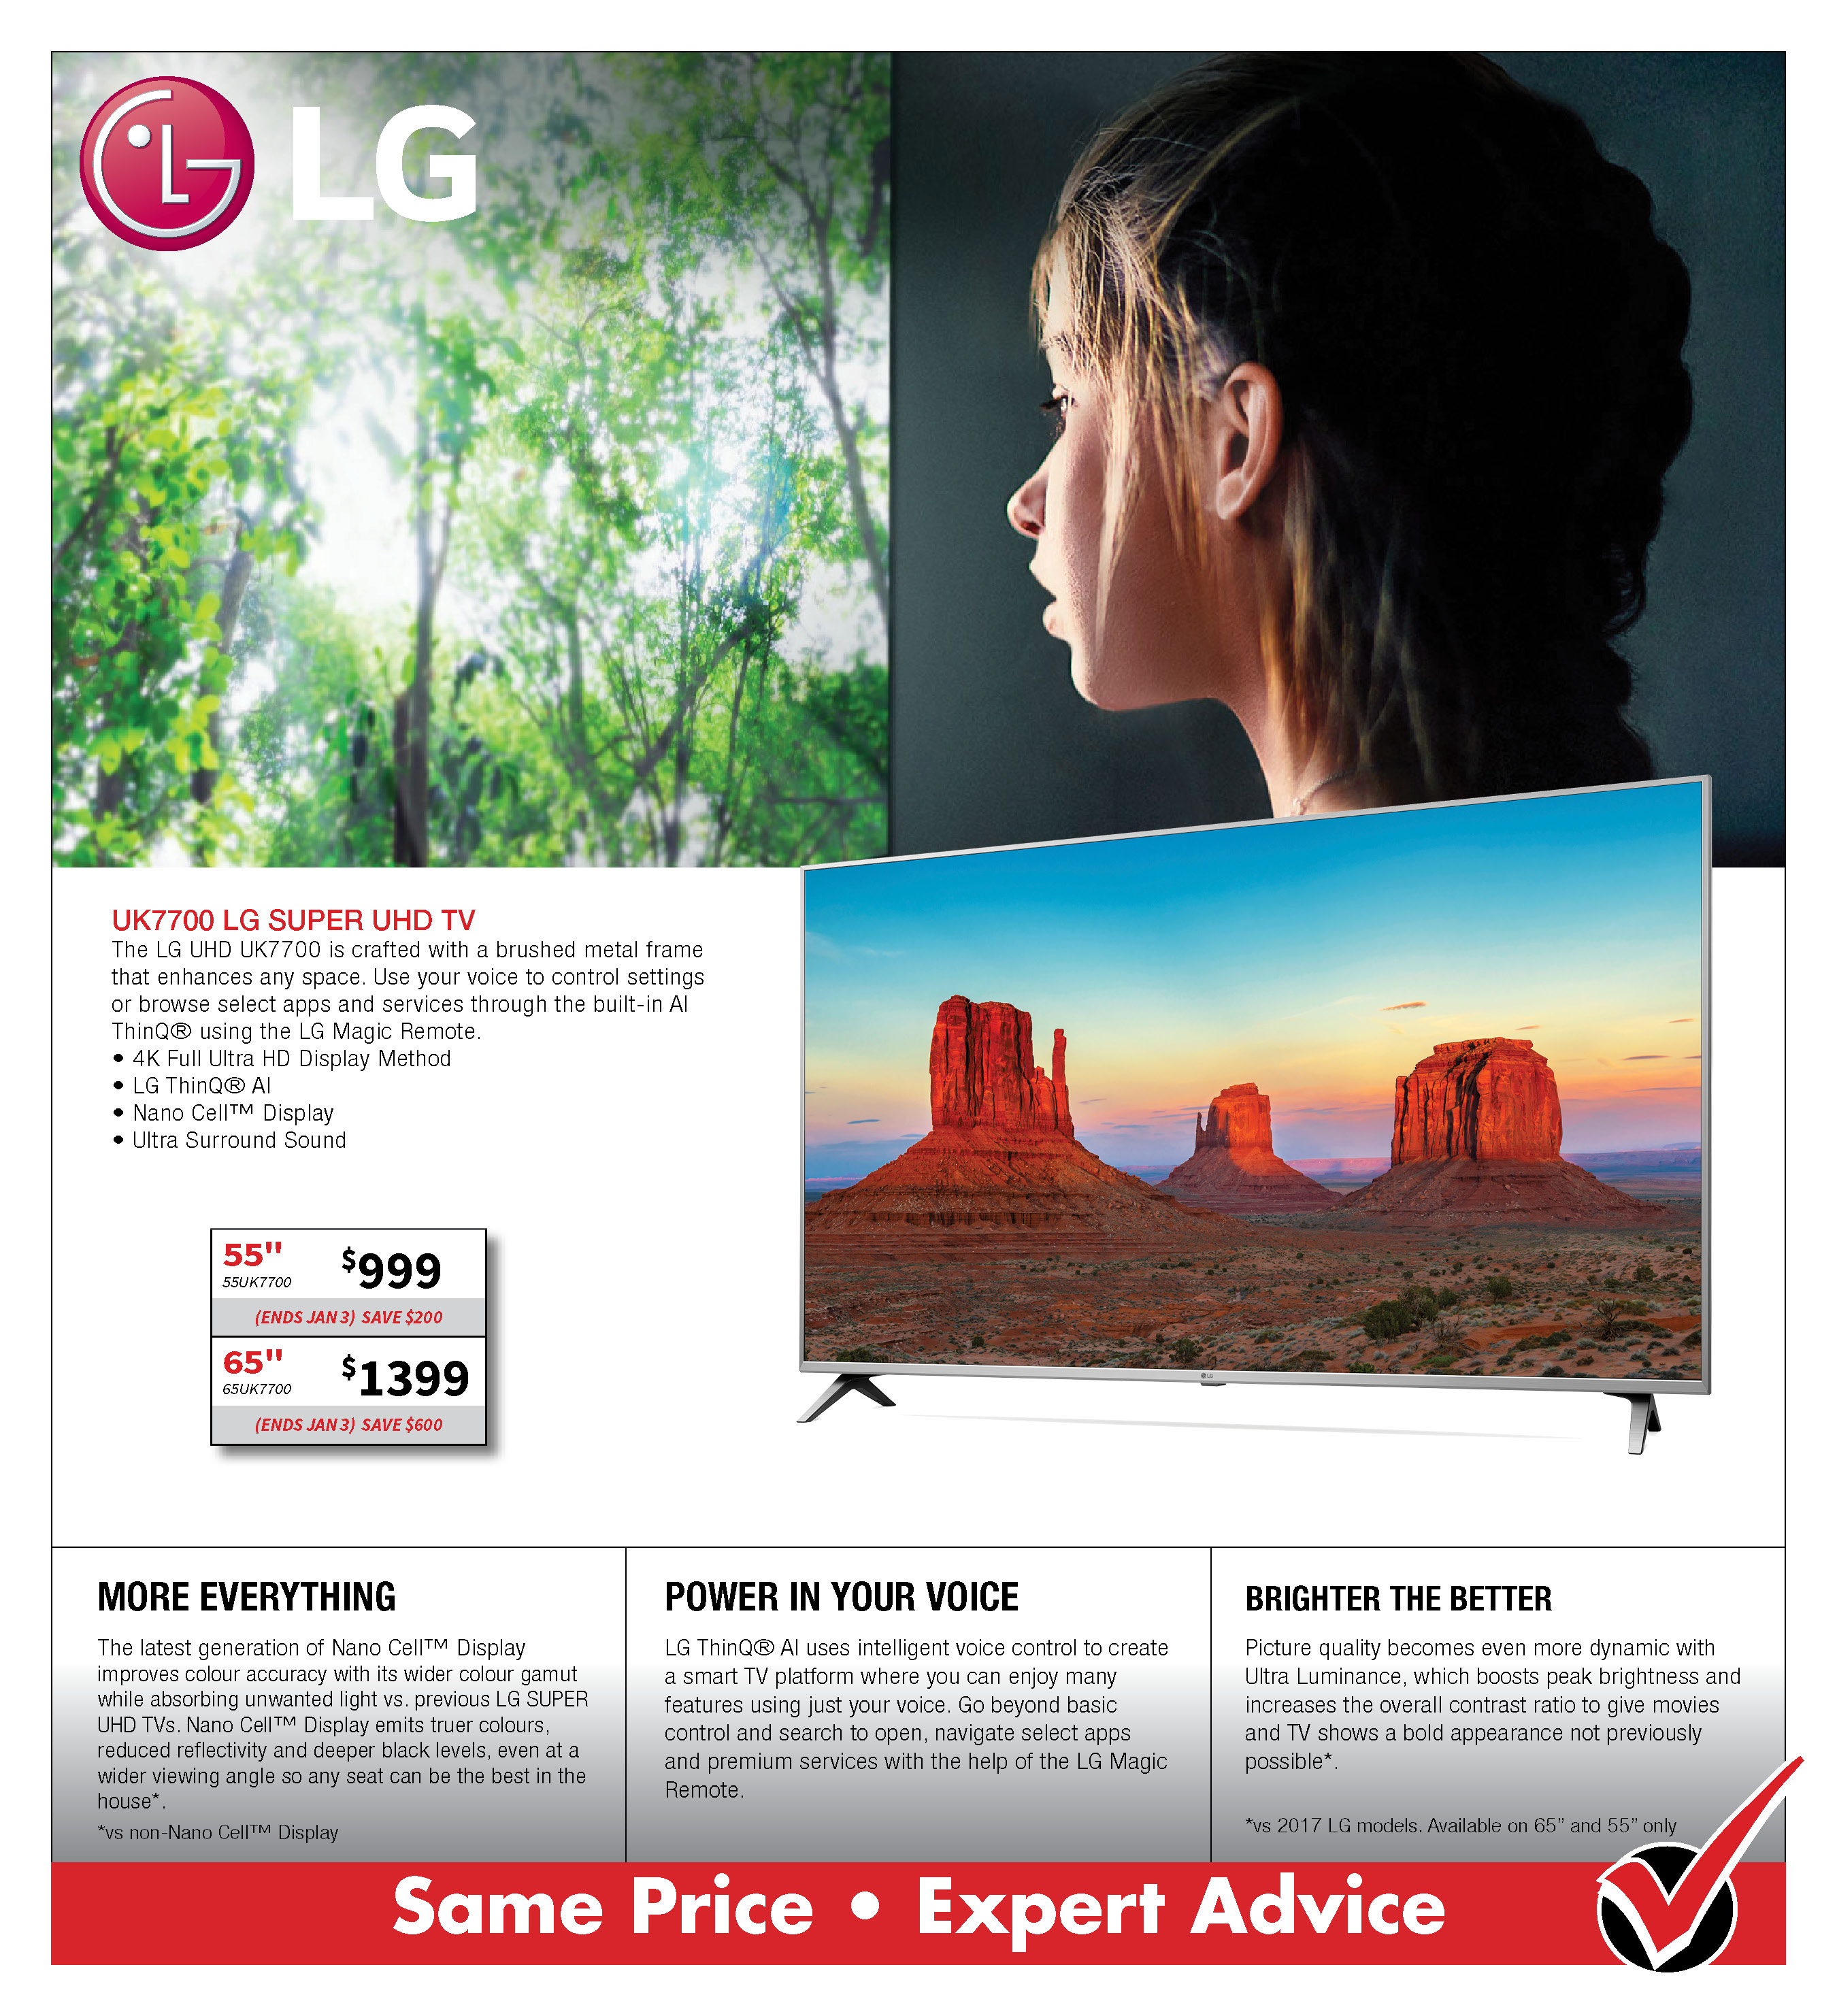 LG UK7700 SUPER UHD TV